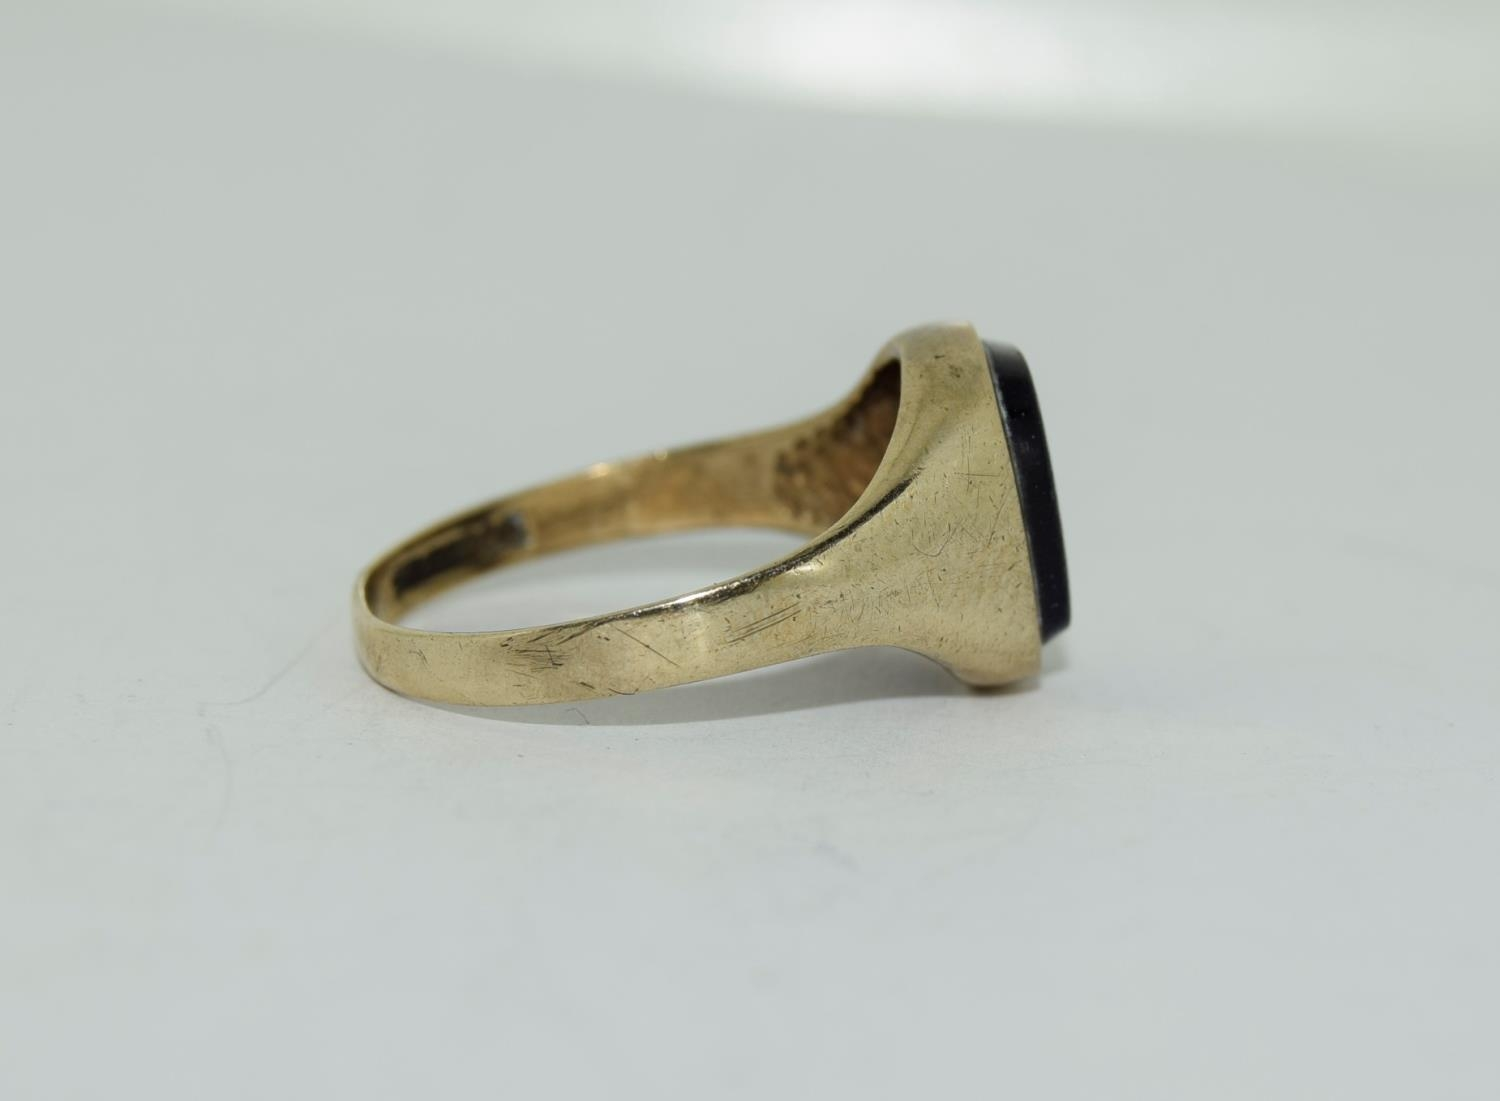 9ct gold gents sygnet ring set with unpolished amethyst centre stone size Q - Image 9 of 12